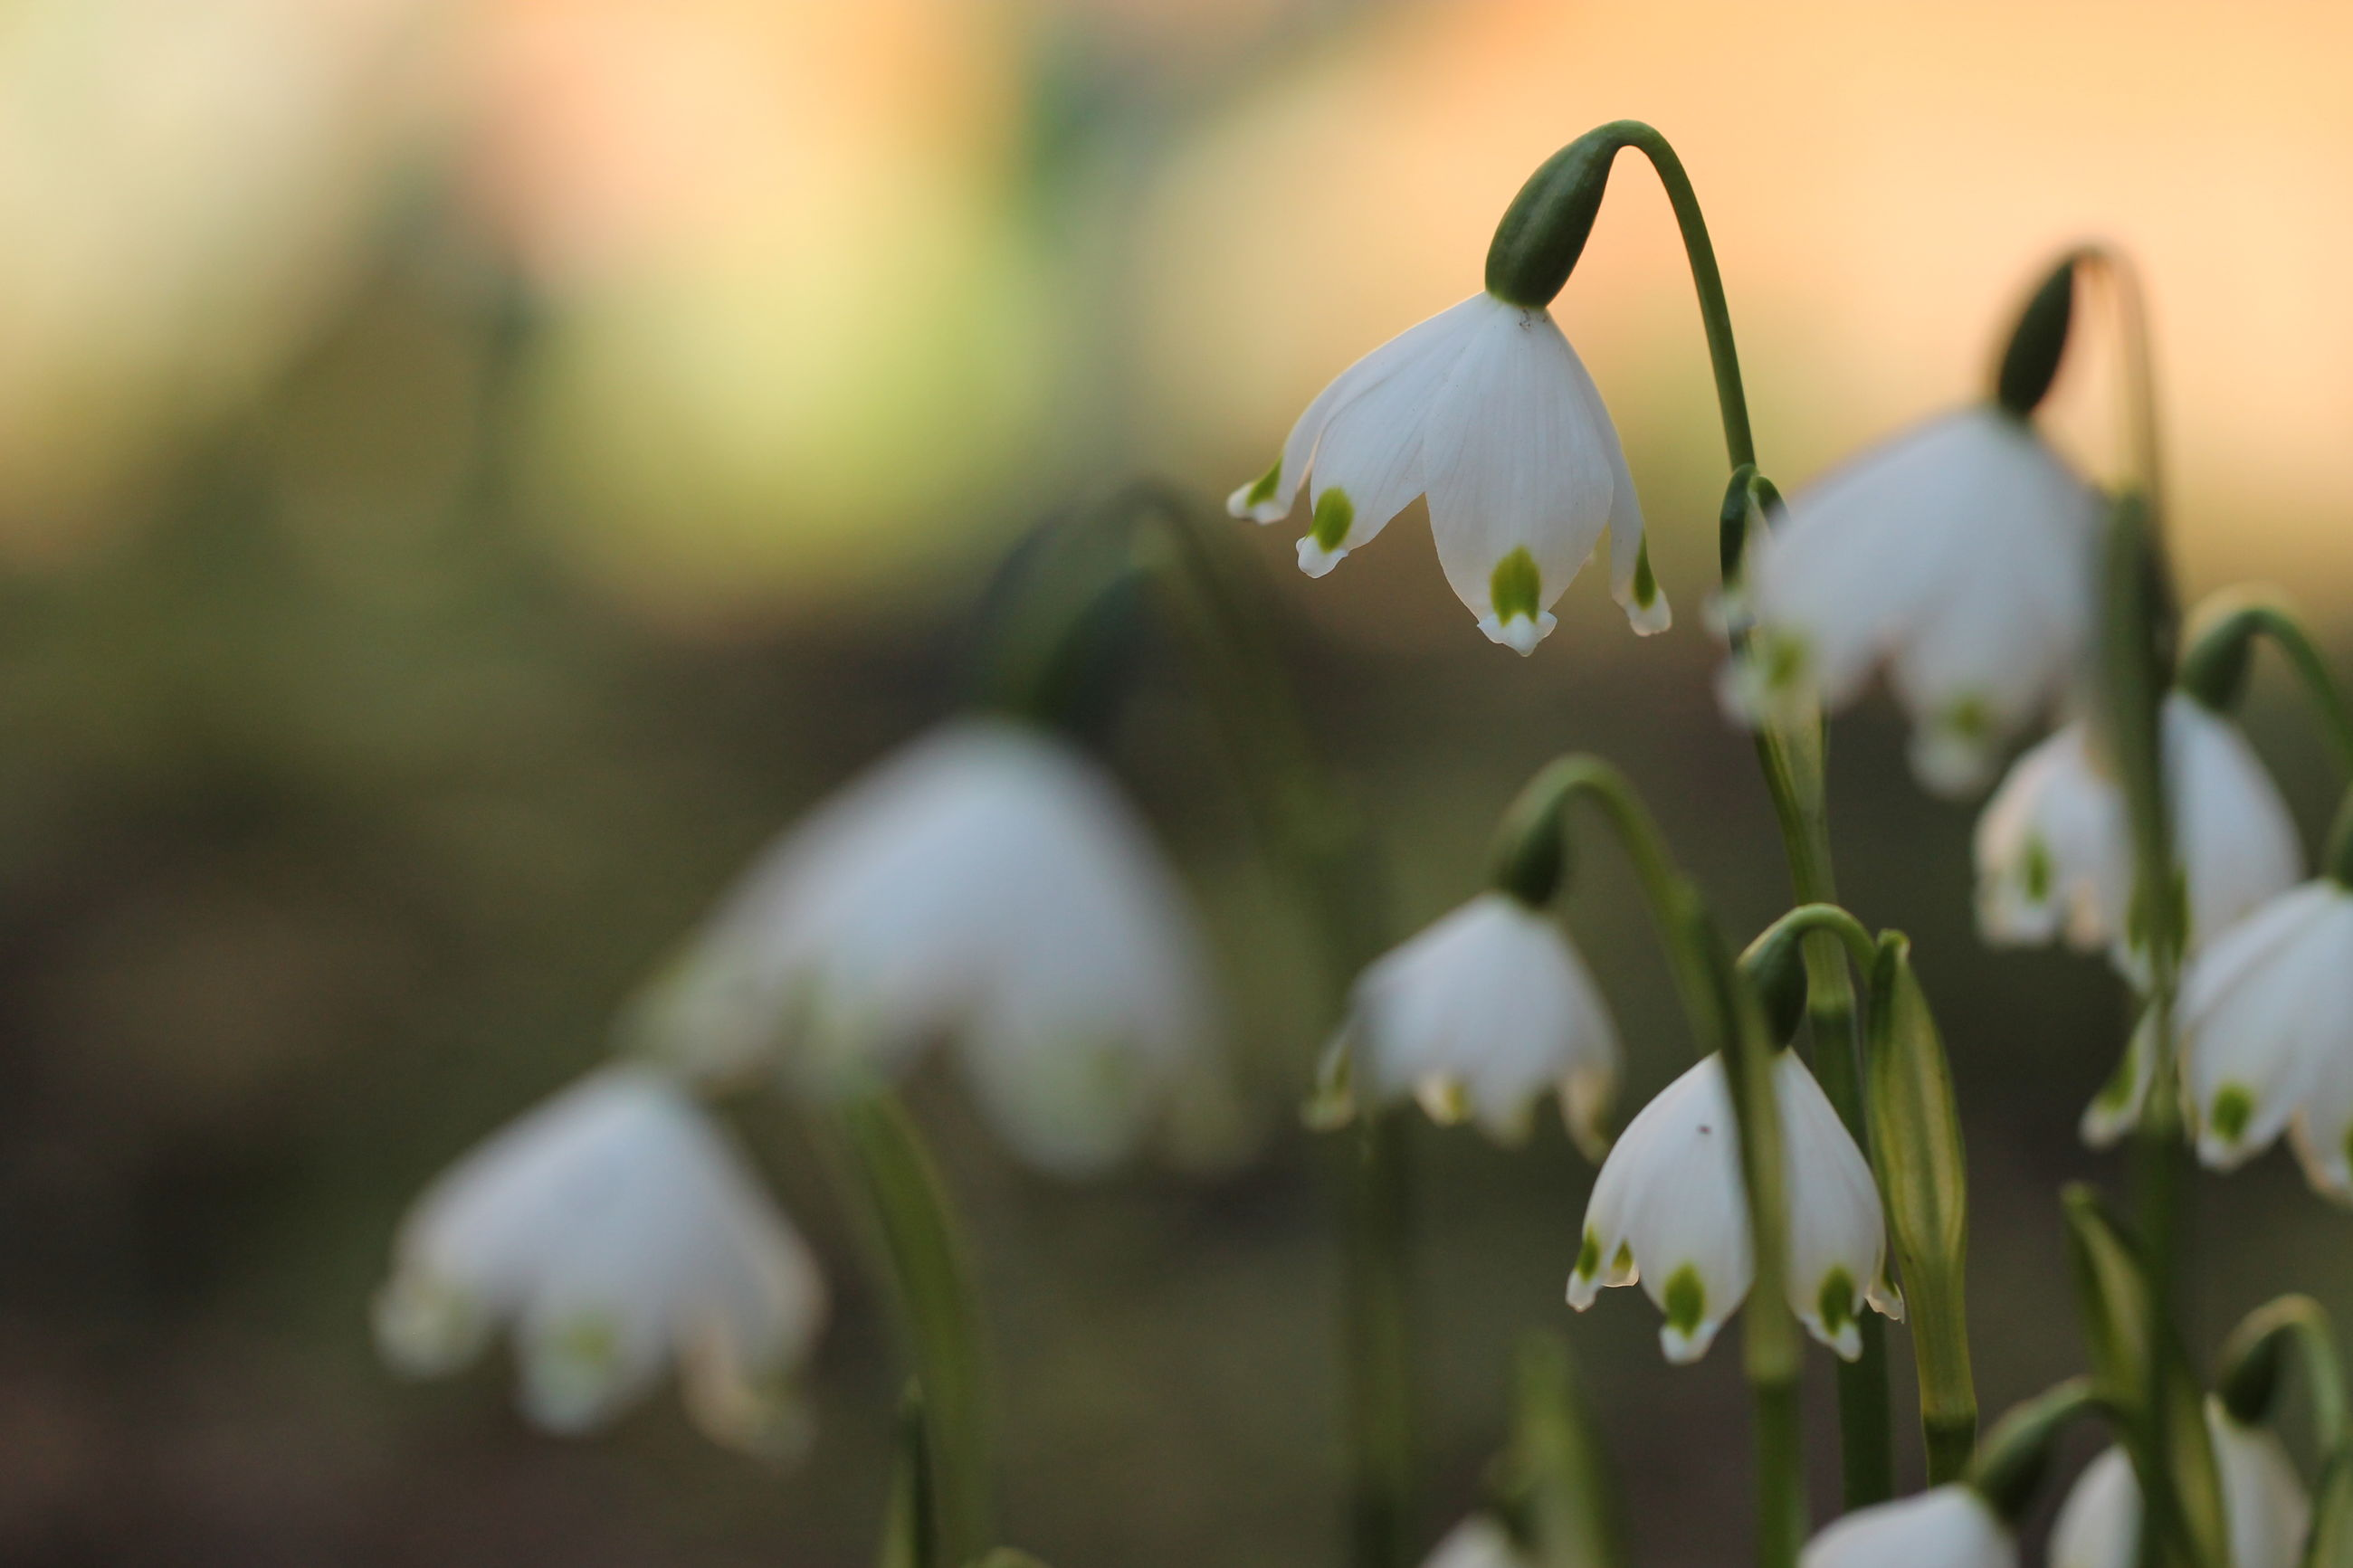 CLOSE-UP OF WHITE FLOWERING PLANTS OUTDOORS